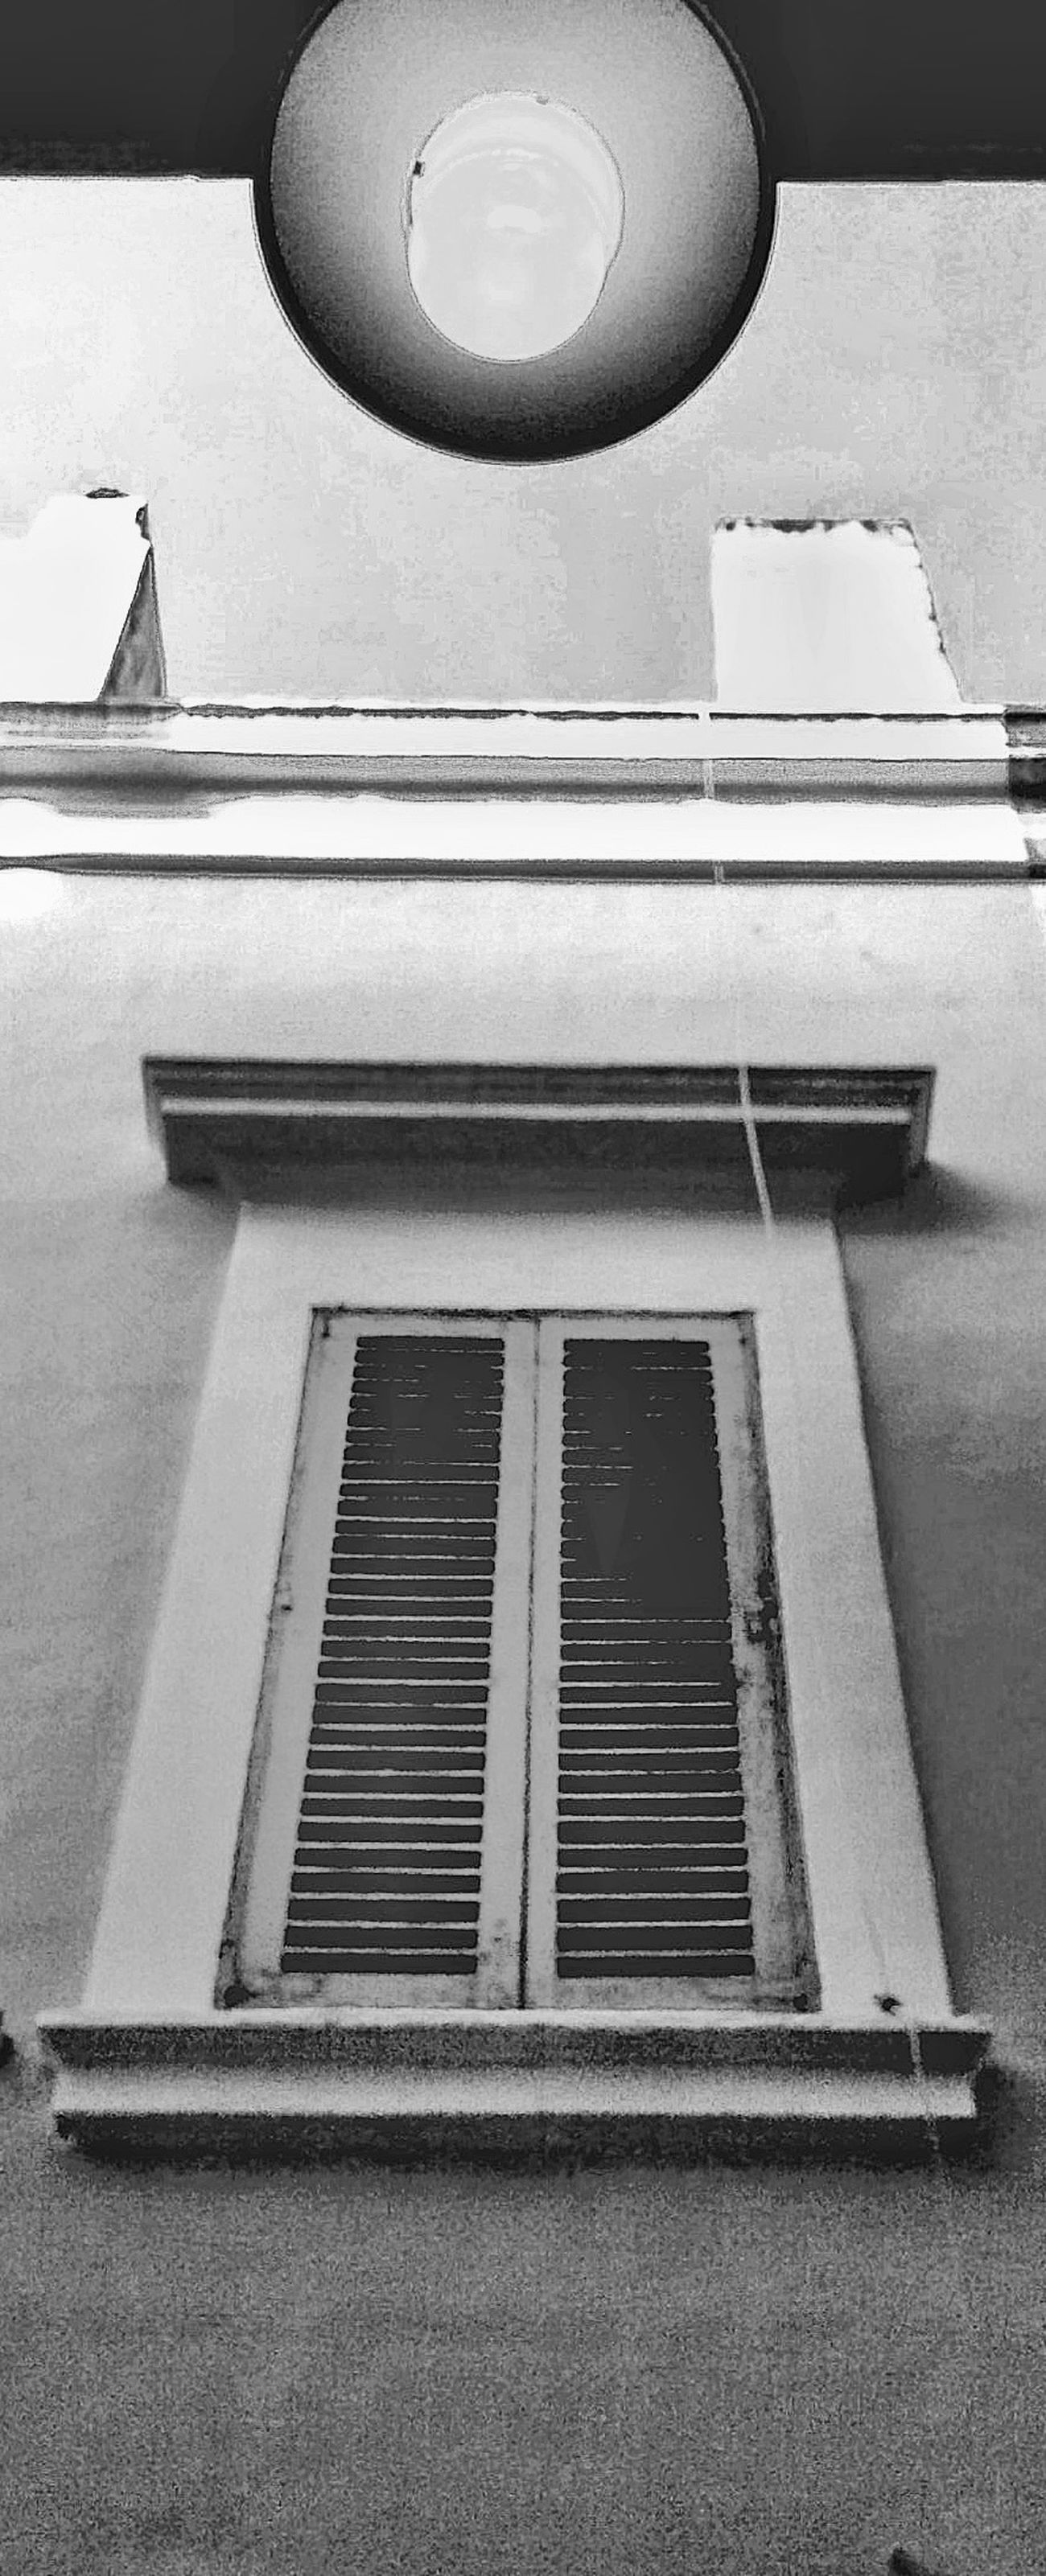 Something Like Symmetry Old Building Charms Old Window Walking By Home Town Low Angle Perspective Architecture Outdoors Strange Days picture becoming paint